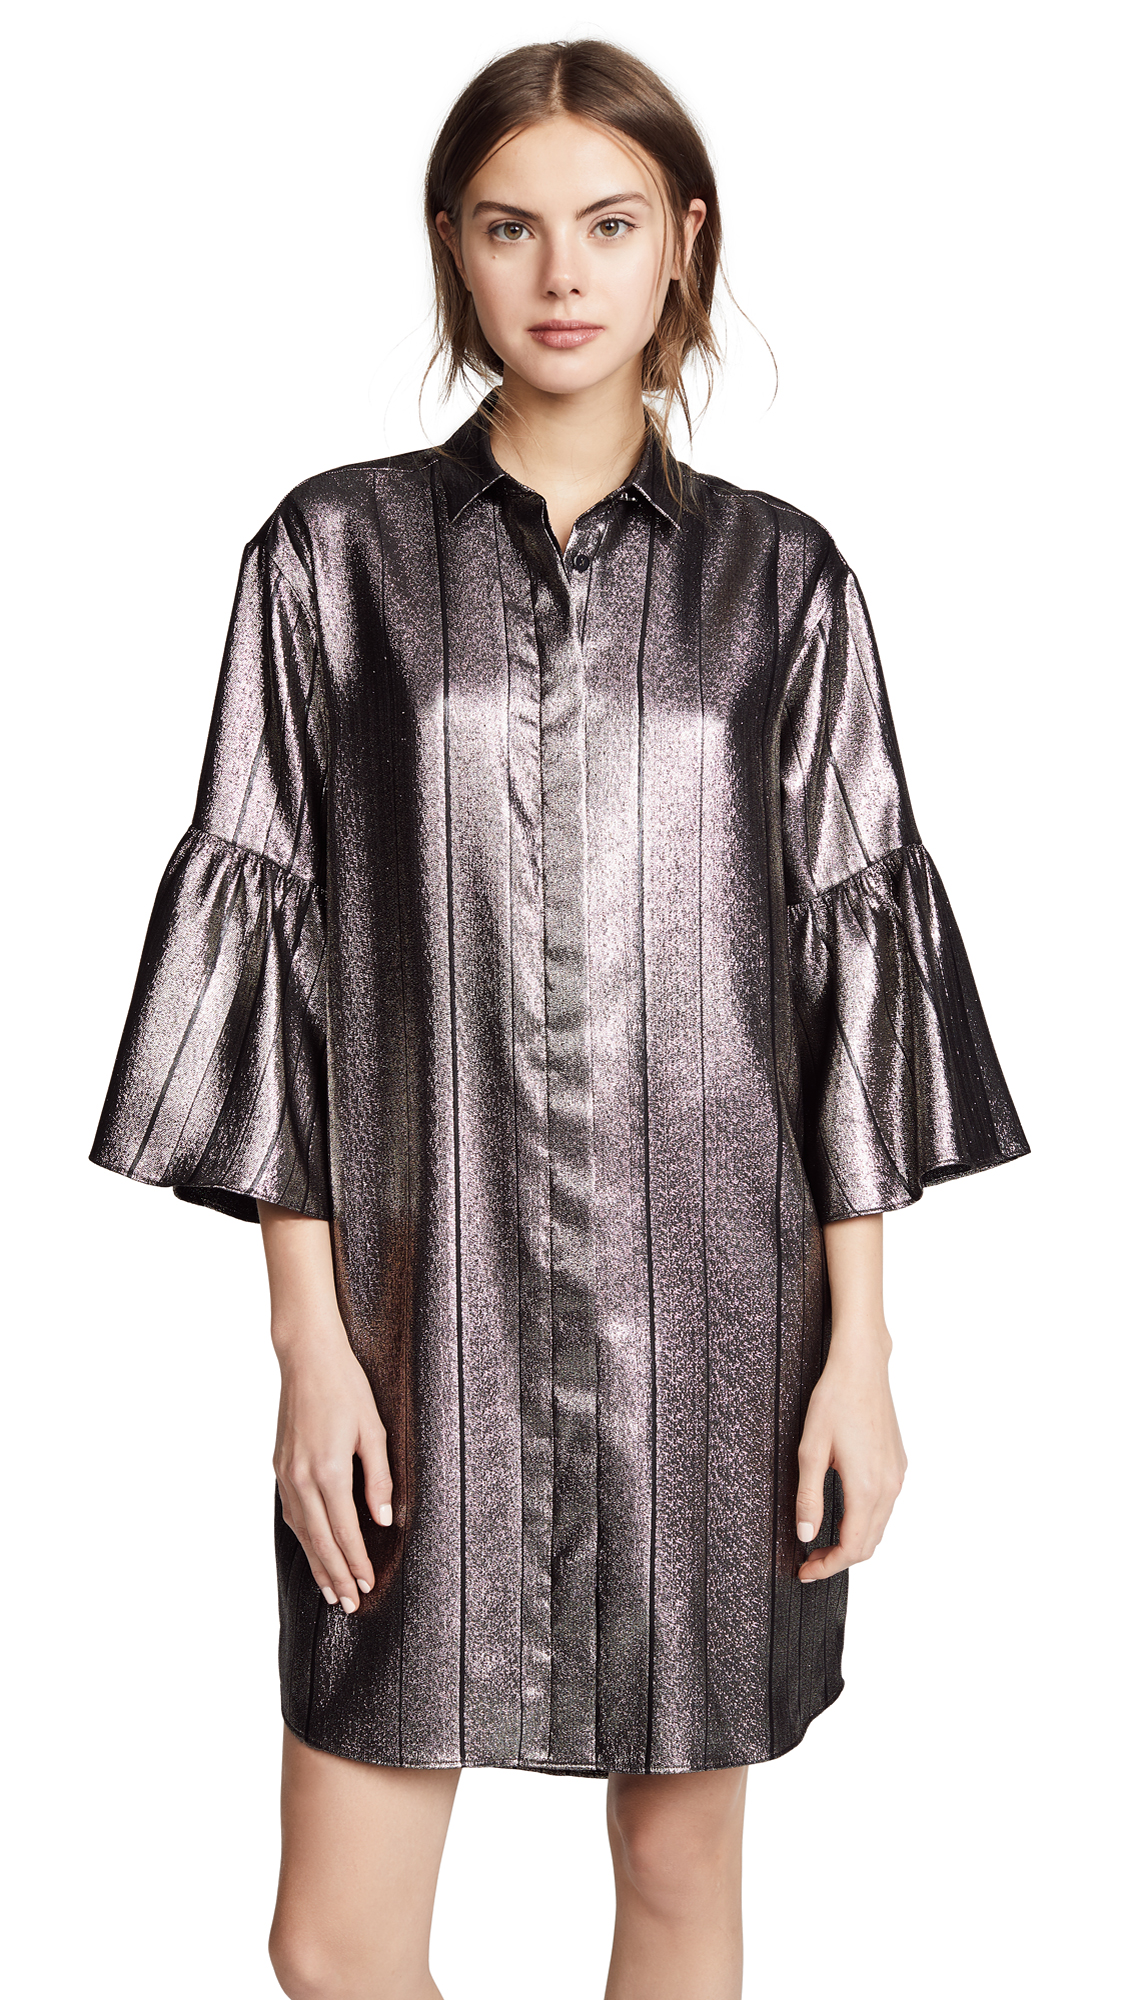 Paul Smith Metallic Dress